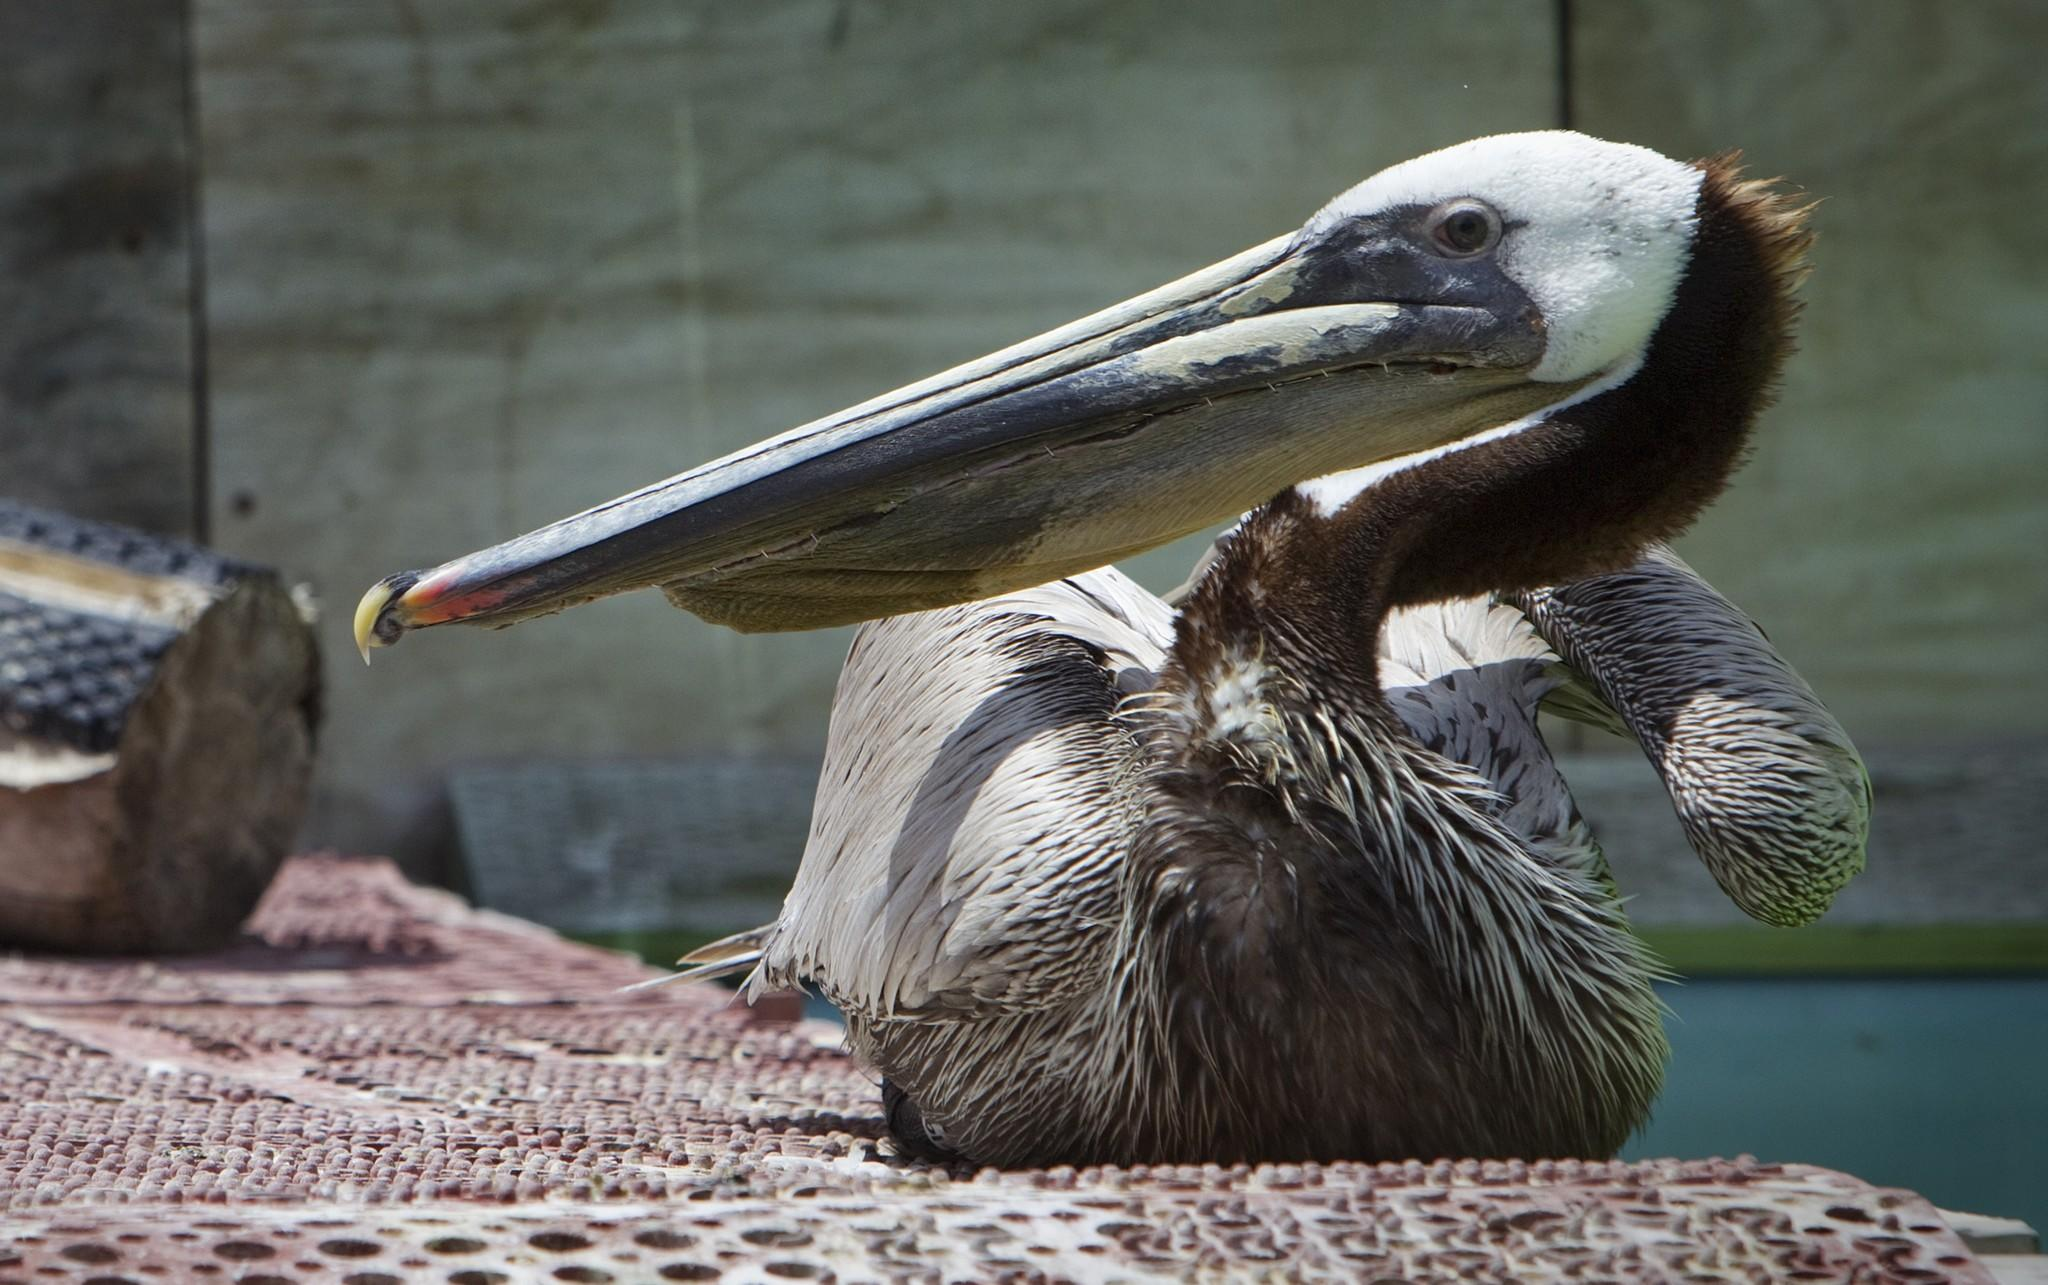 A brown pelican was found with its pouch slashed and is now recovering at a bird rescue center in San Pedro. The reward for information about the attack has risen to $7,500 in just a few hours.